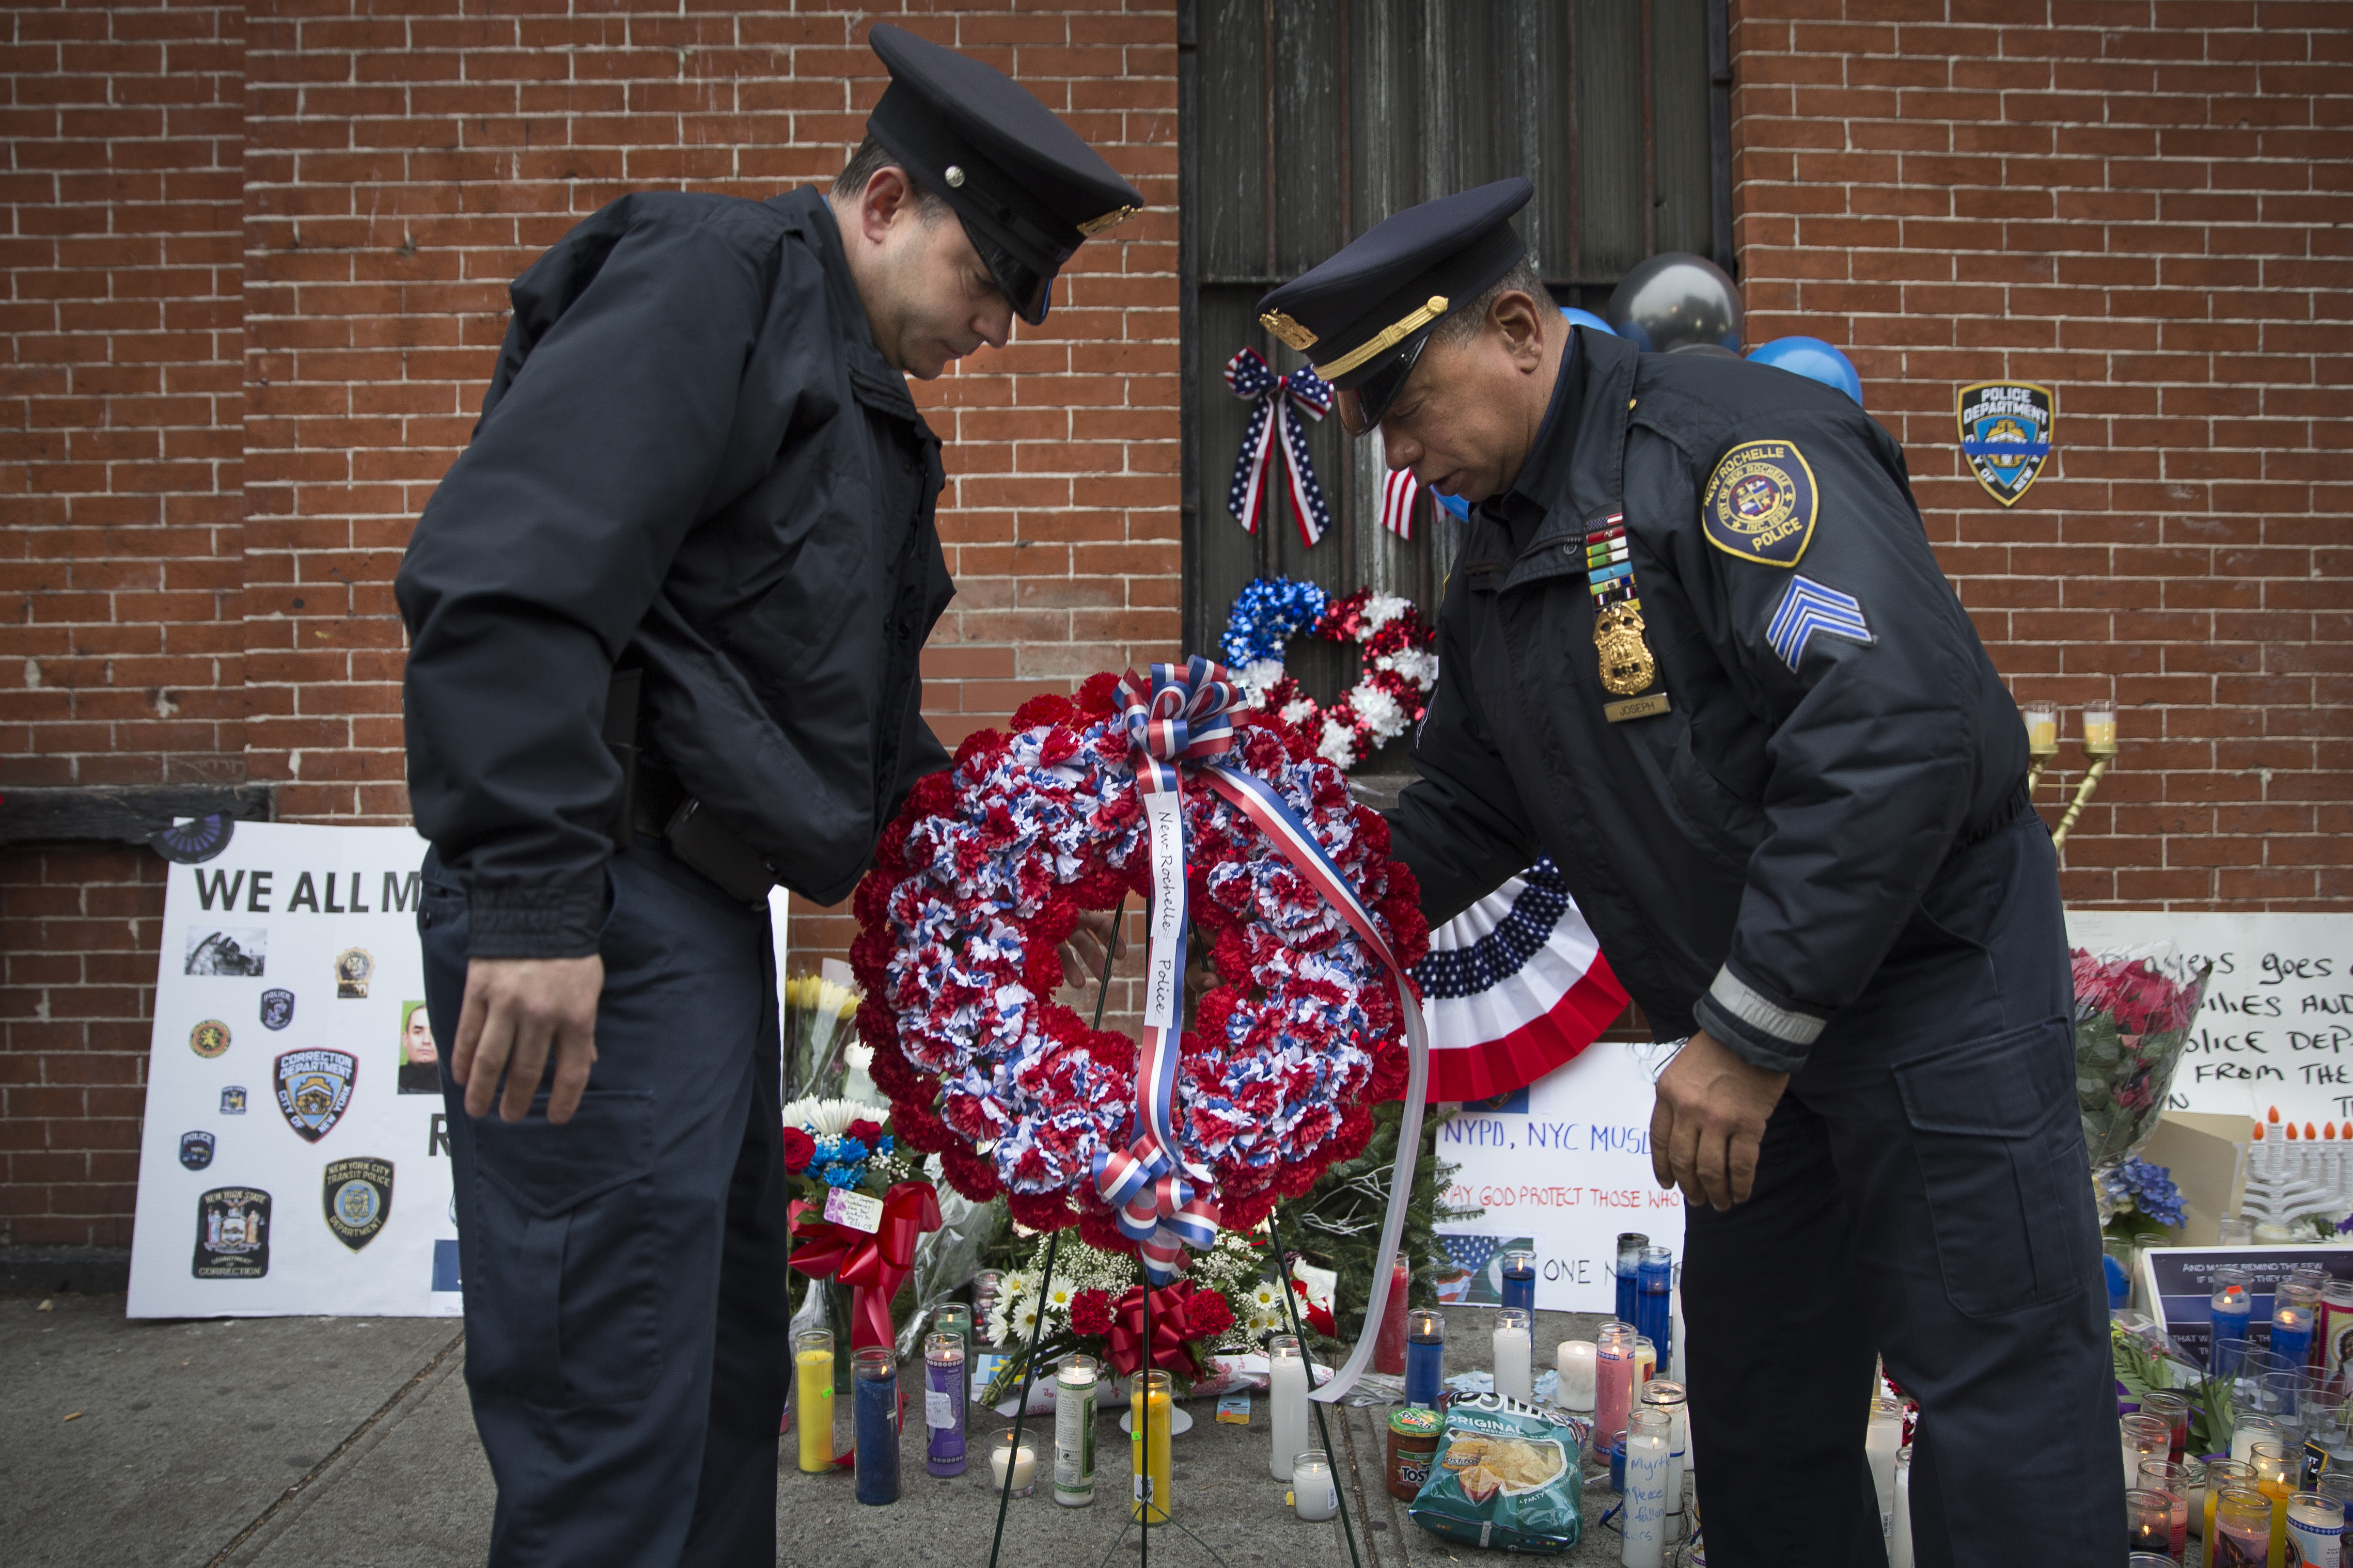 In this file photo, members of the New Rochelle, N.Y. police department place a wreath at a makeshift memorial near the site where NYPD officers Rafael Ramos and Wenjian Liu were murdered in the Brooklyn borough of New York, Dec. 22, 2014.